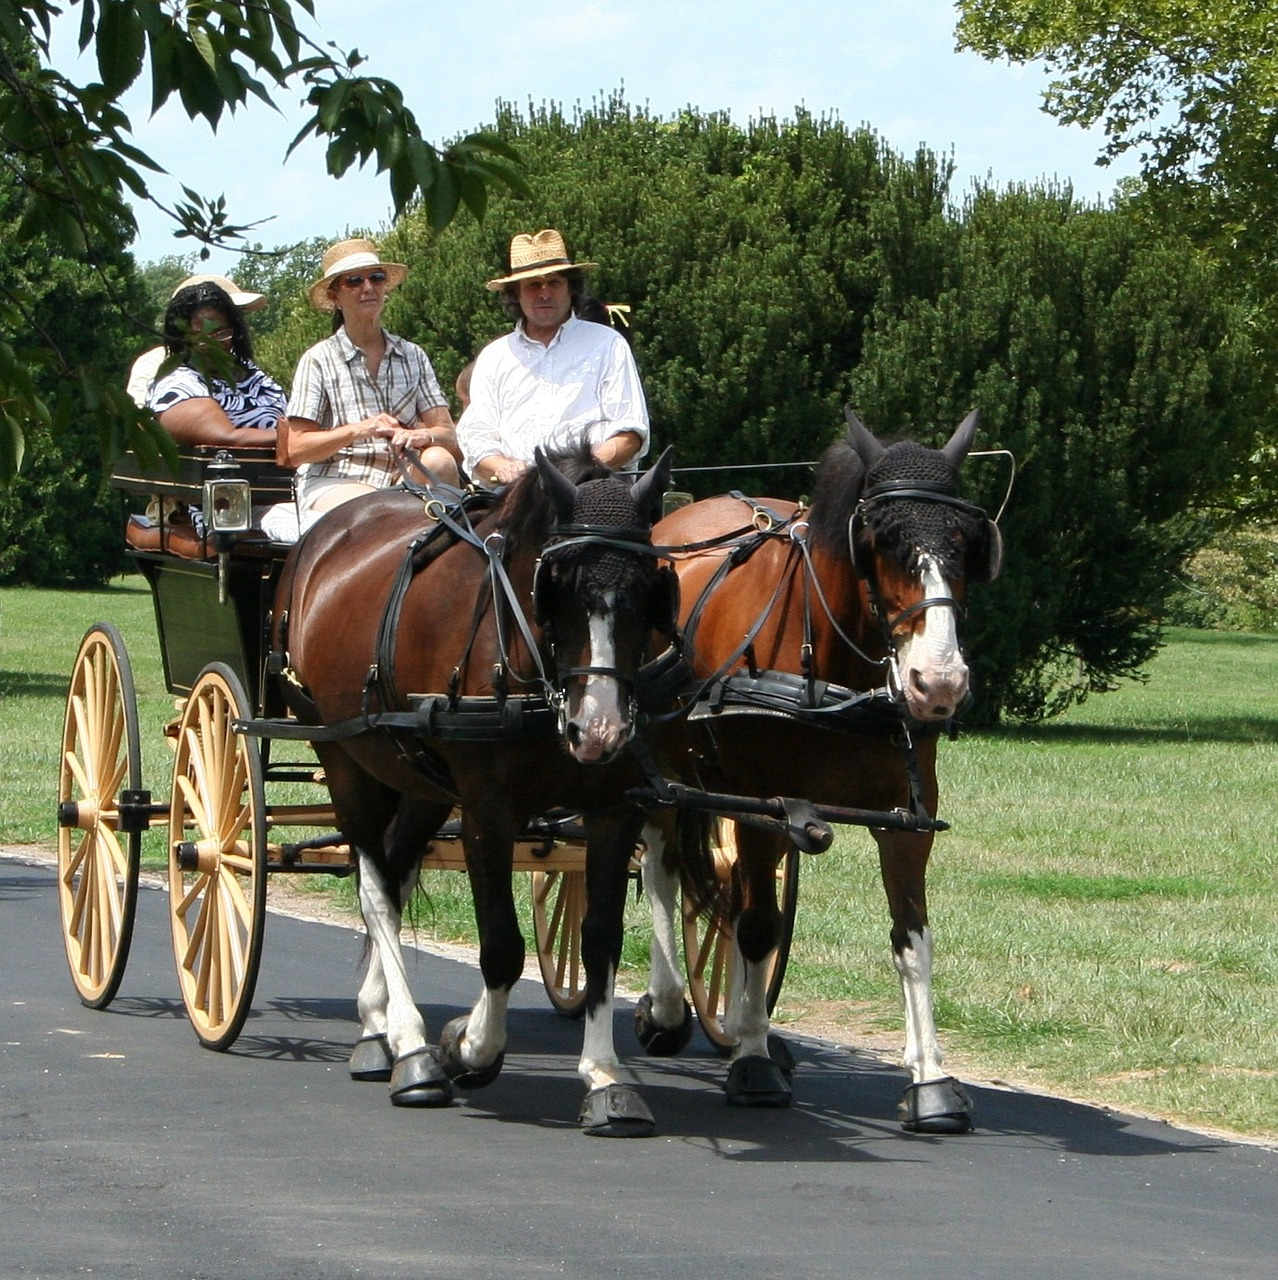 horses carriage tourist free photo